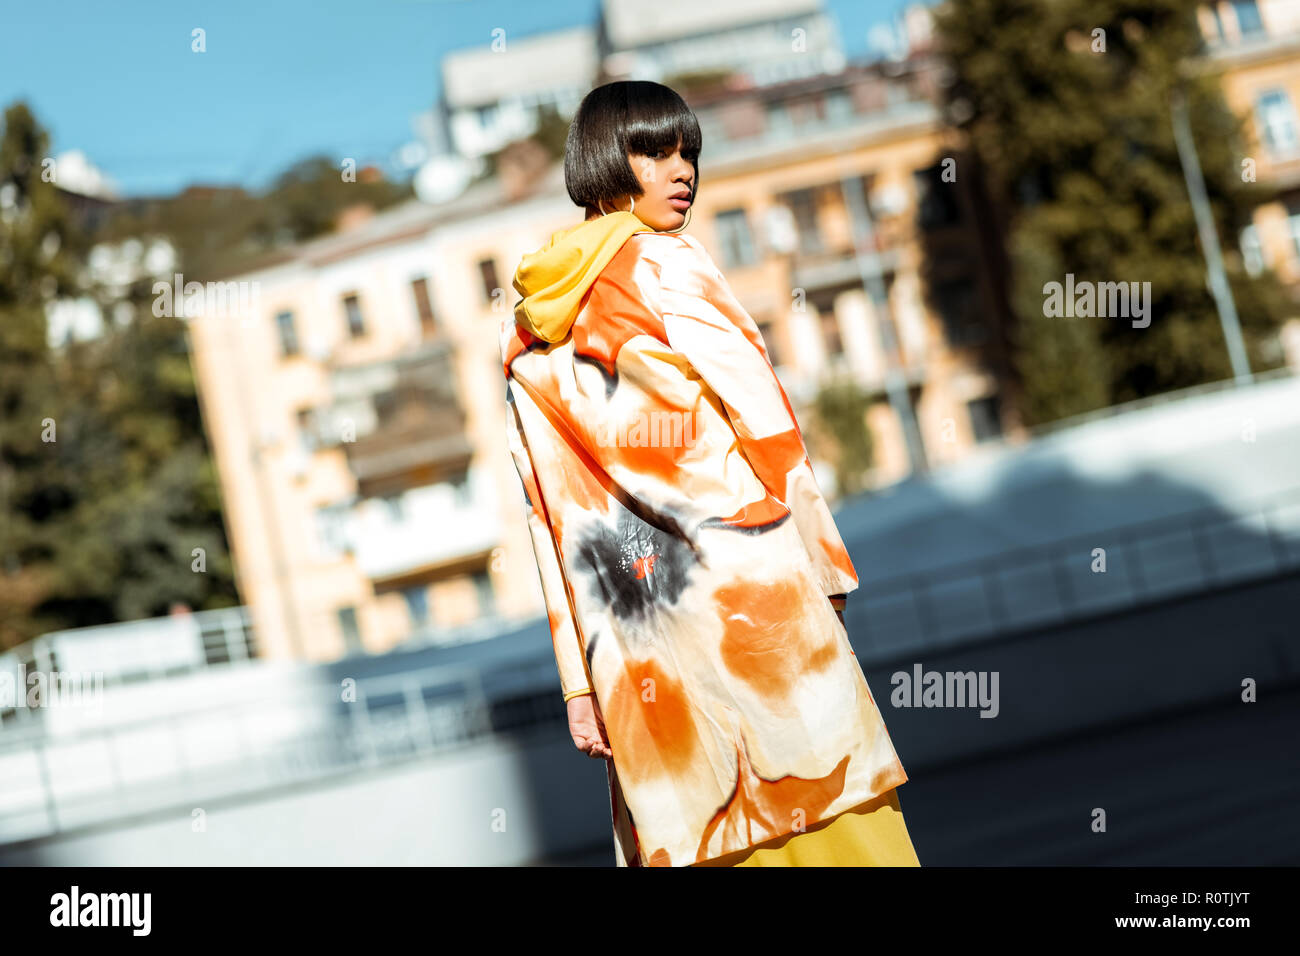 Young appealing lady wearing flower printed cloak - Stock Image